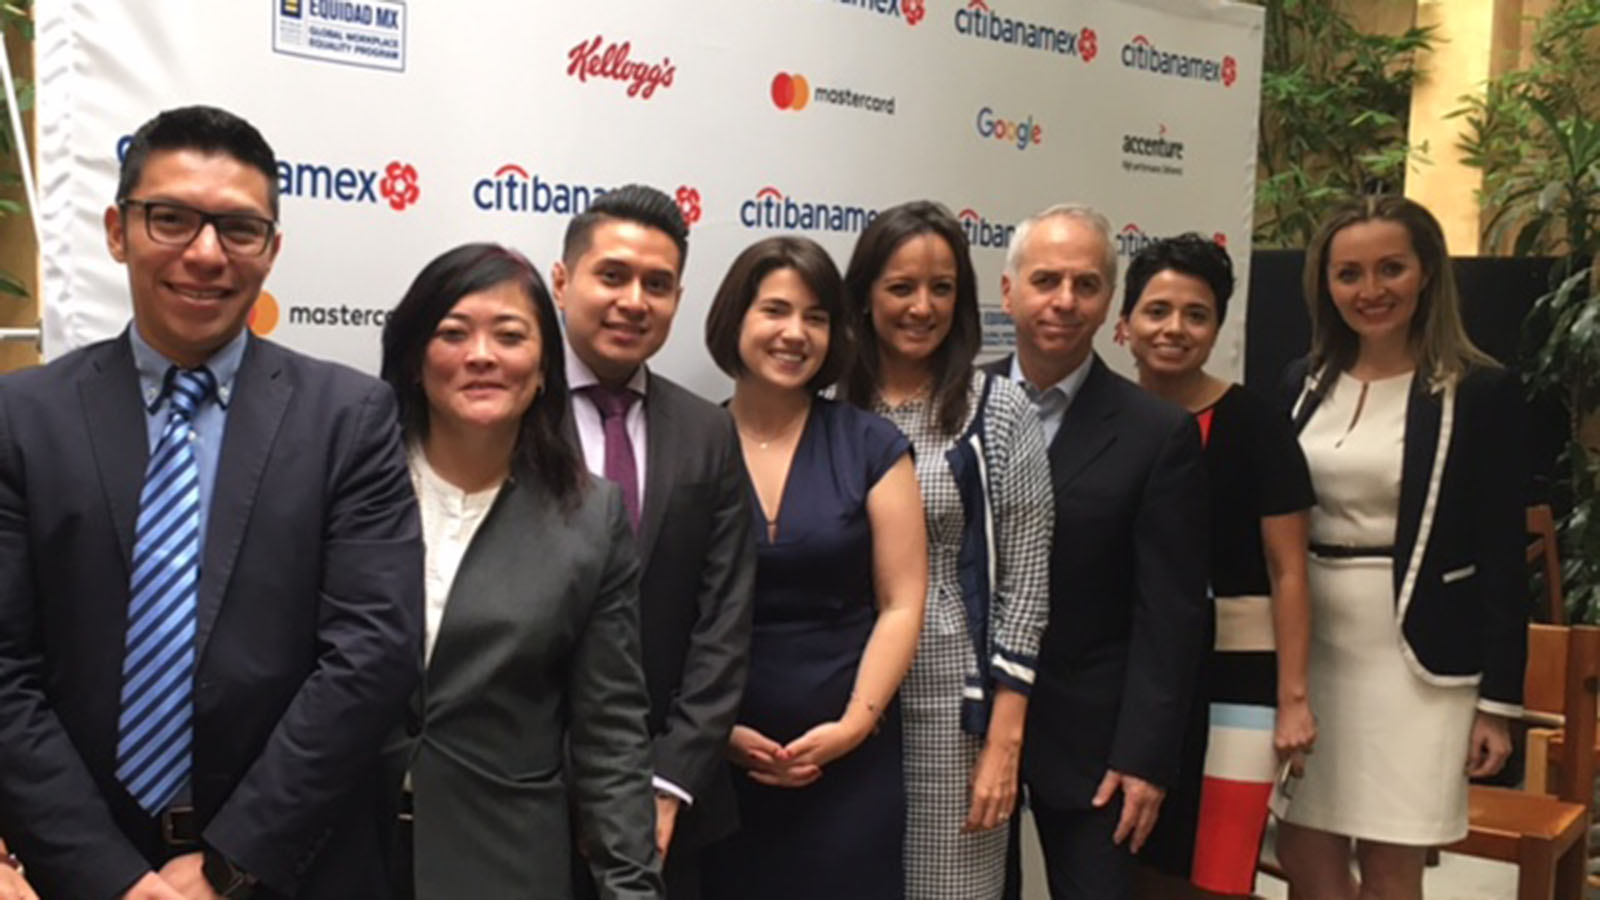 Hrc Equidad Mx Launches Lgbtq Workplace Inclusion Survey